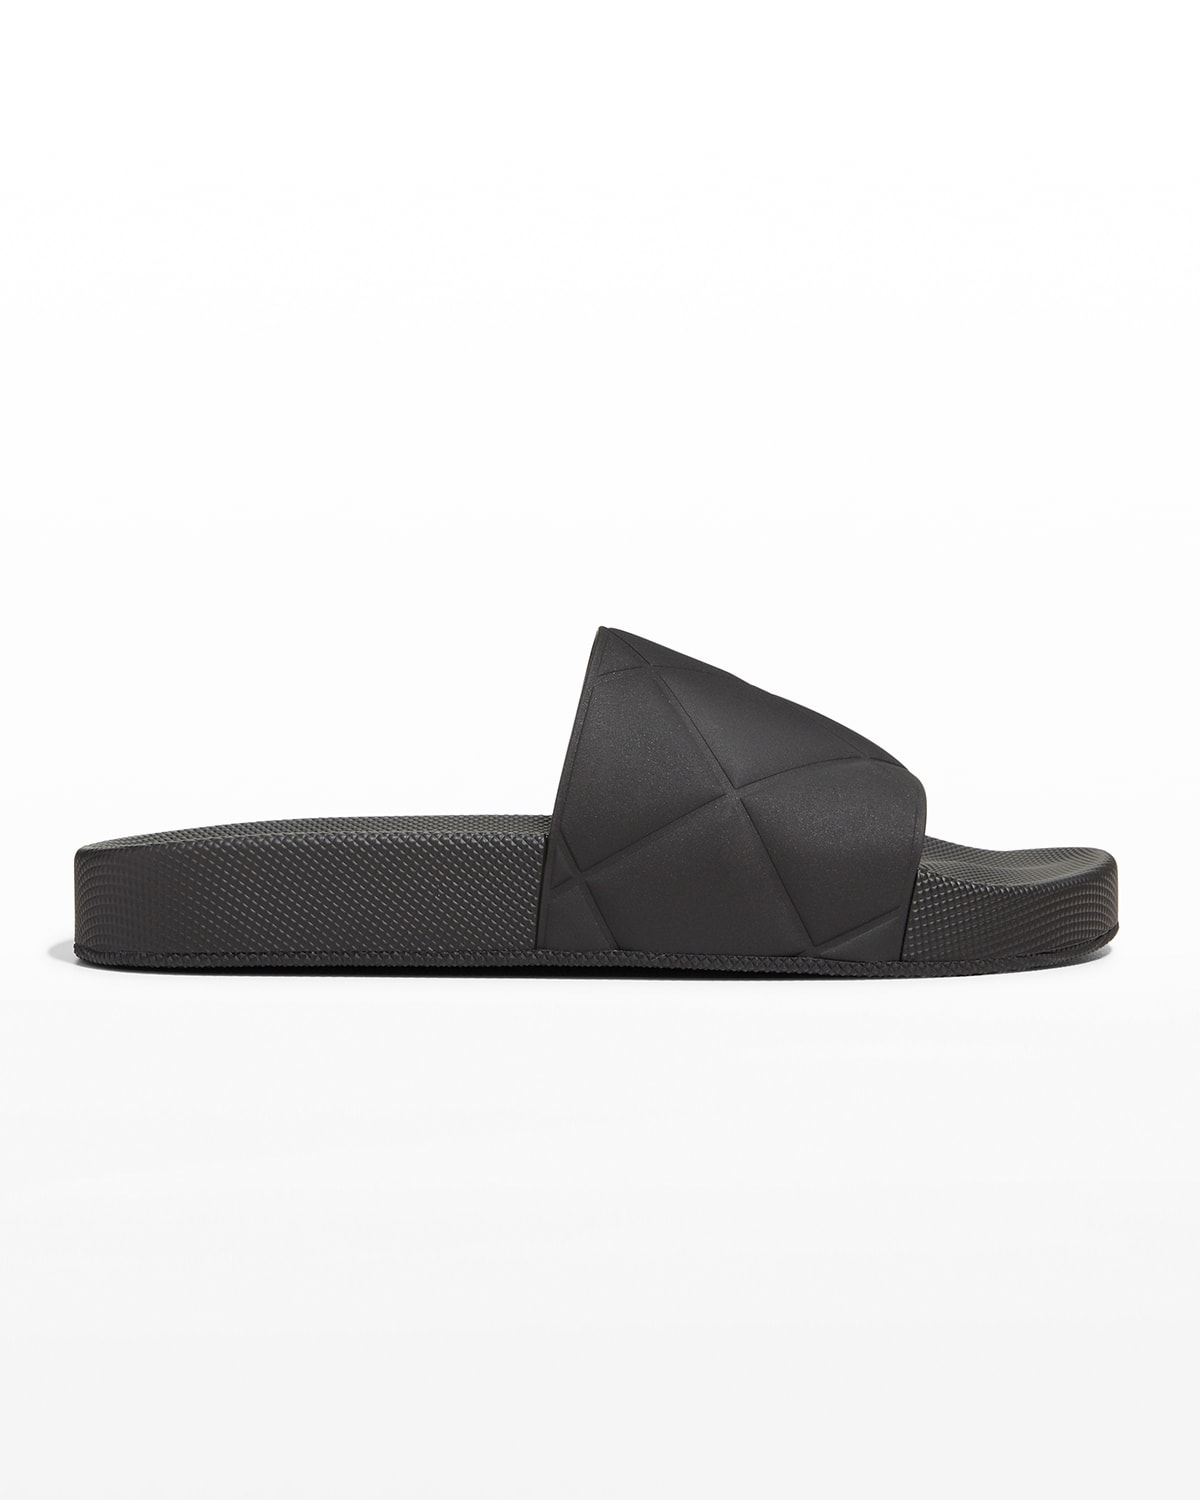 The Slider Puffy Pool Sandals